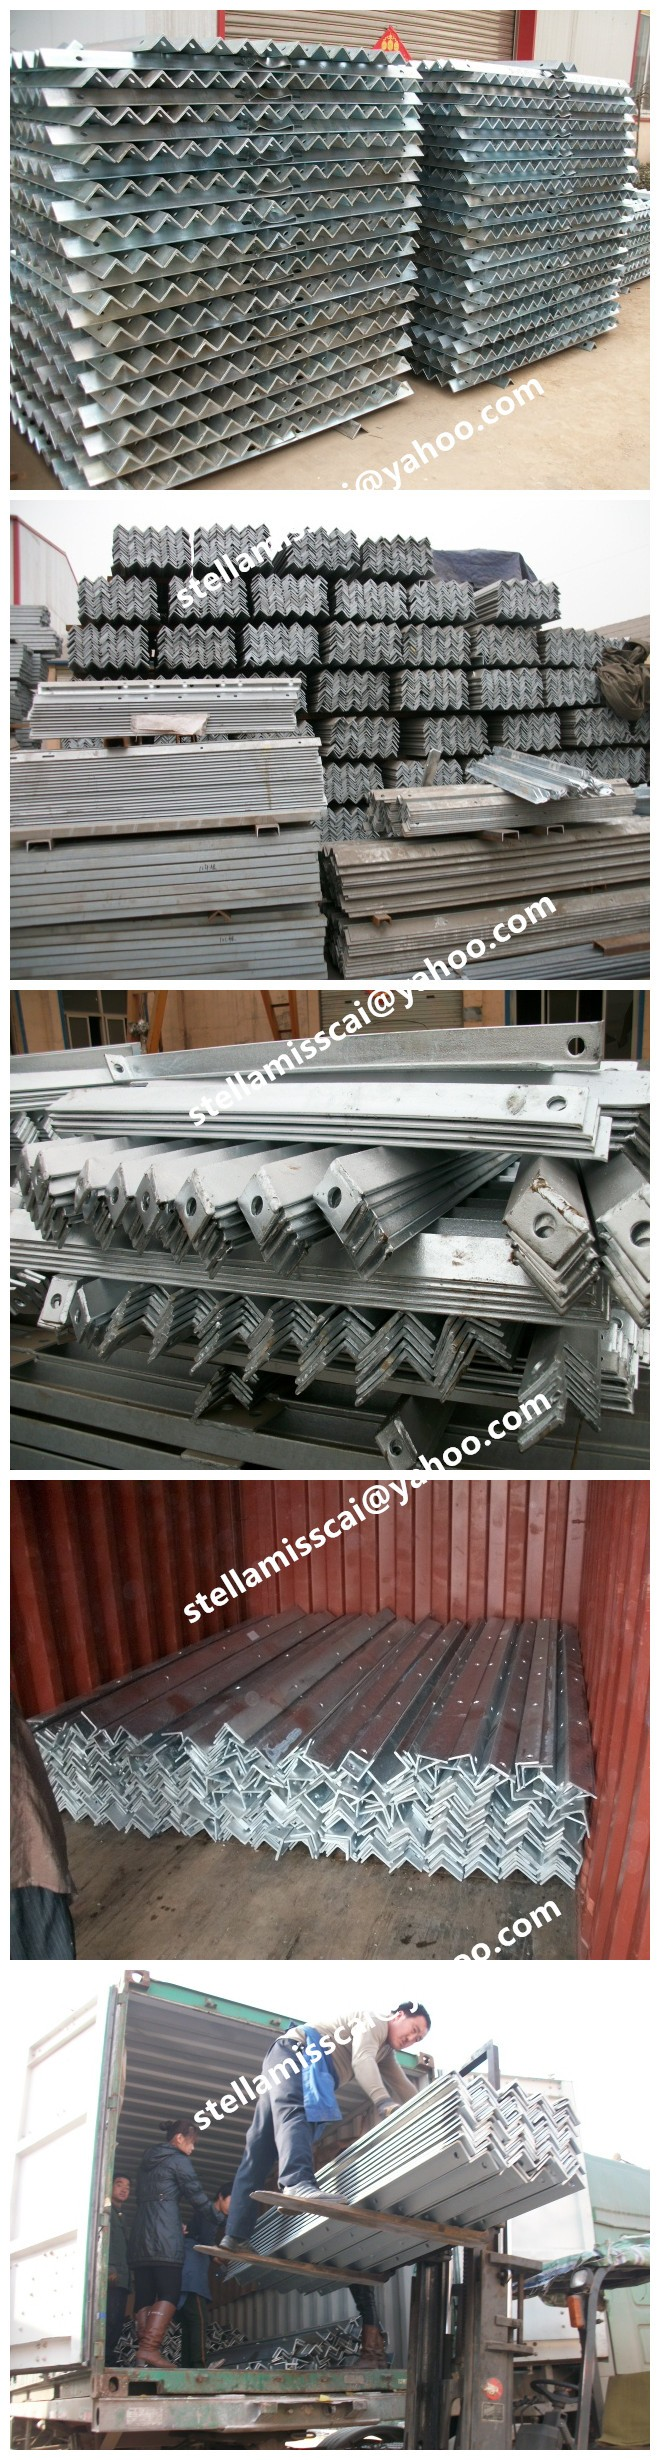 line cross arm electrical cross arm for Chile power tender /galvanize steel pole cross arm bracket/overhard line hardware